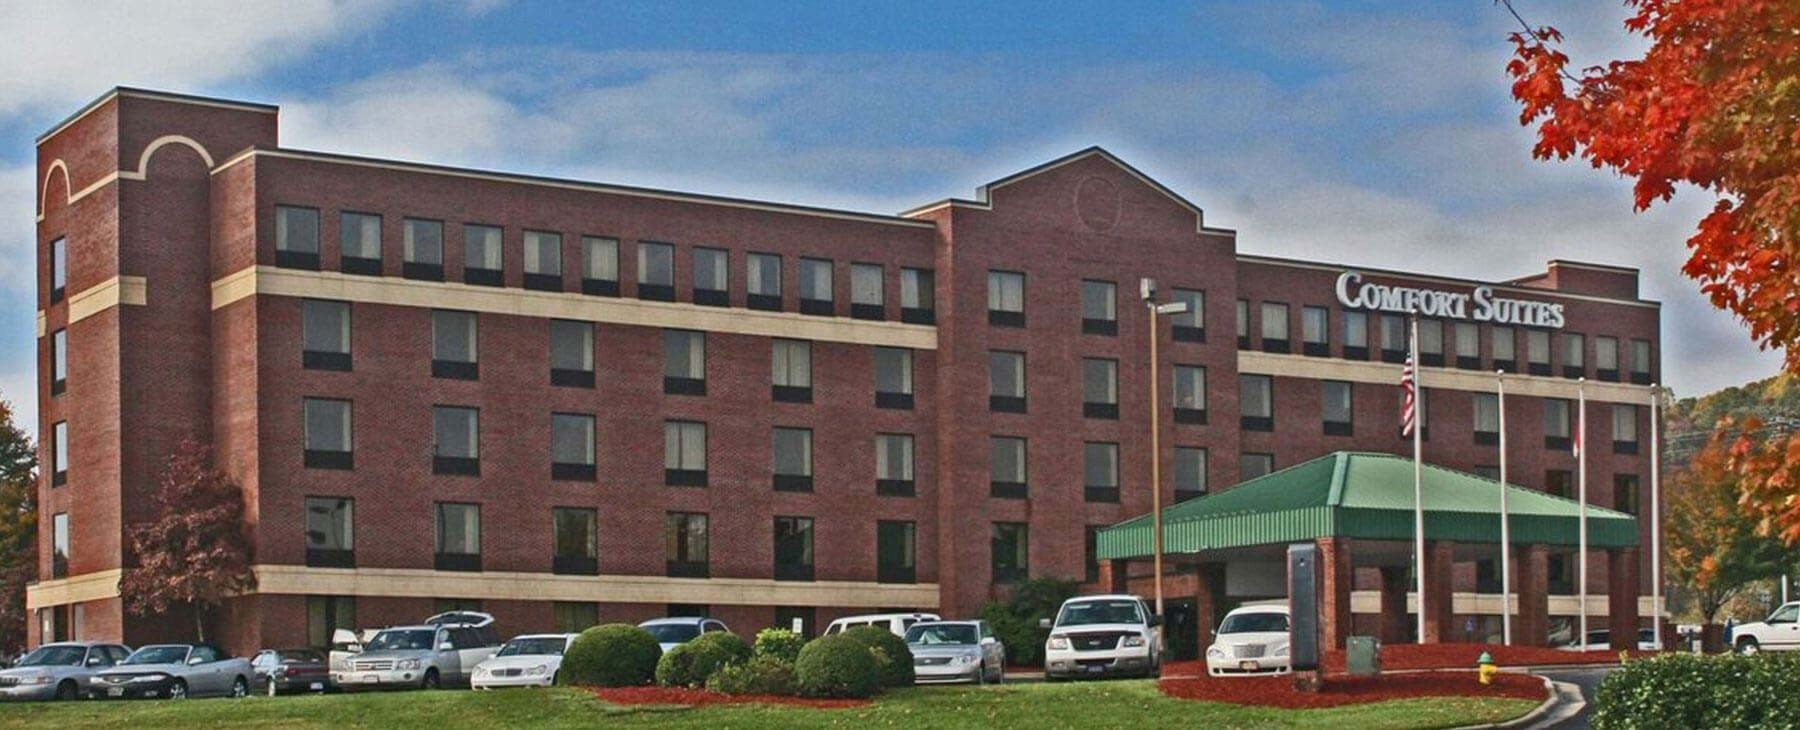 Hotels And Other Lodging In And Near Asheville